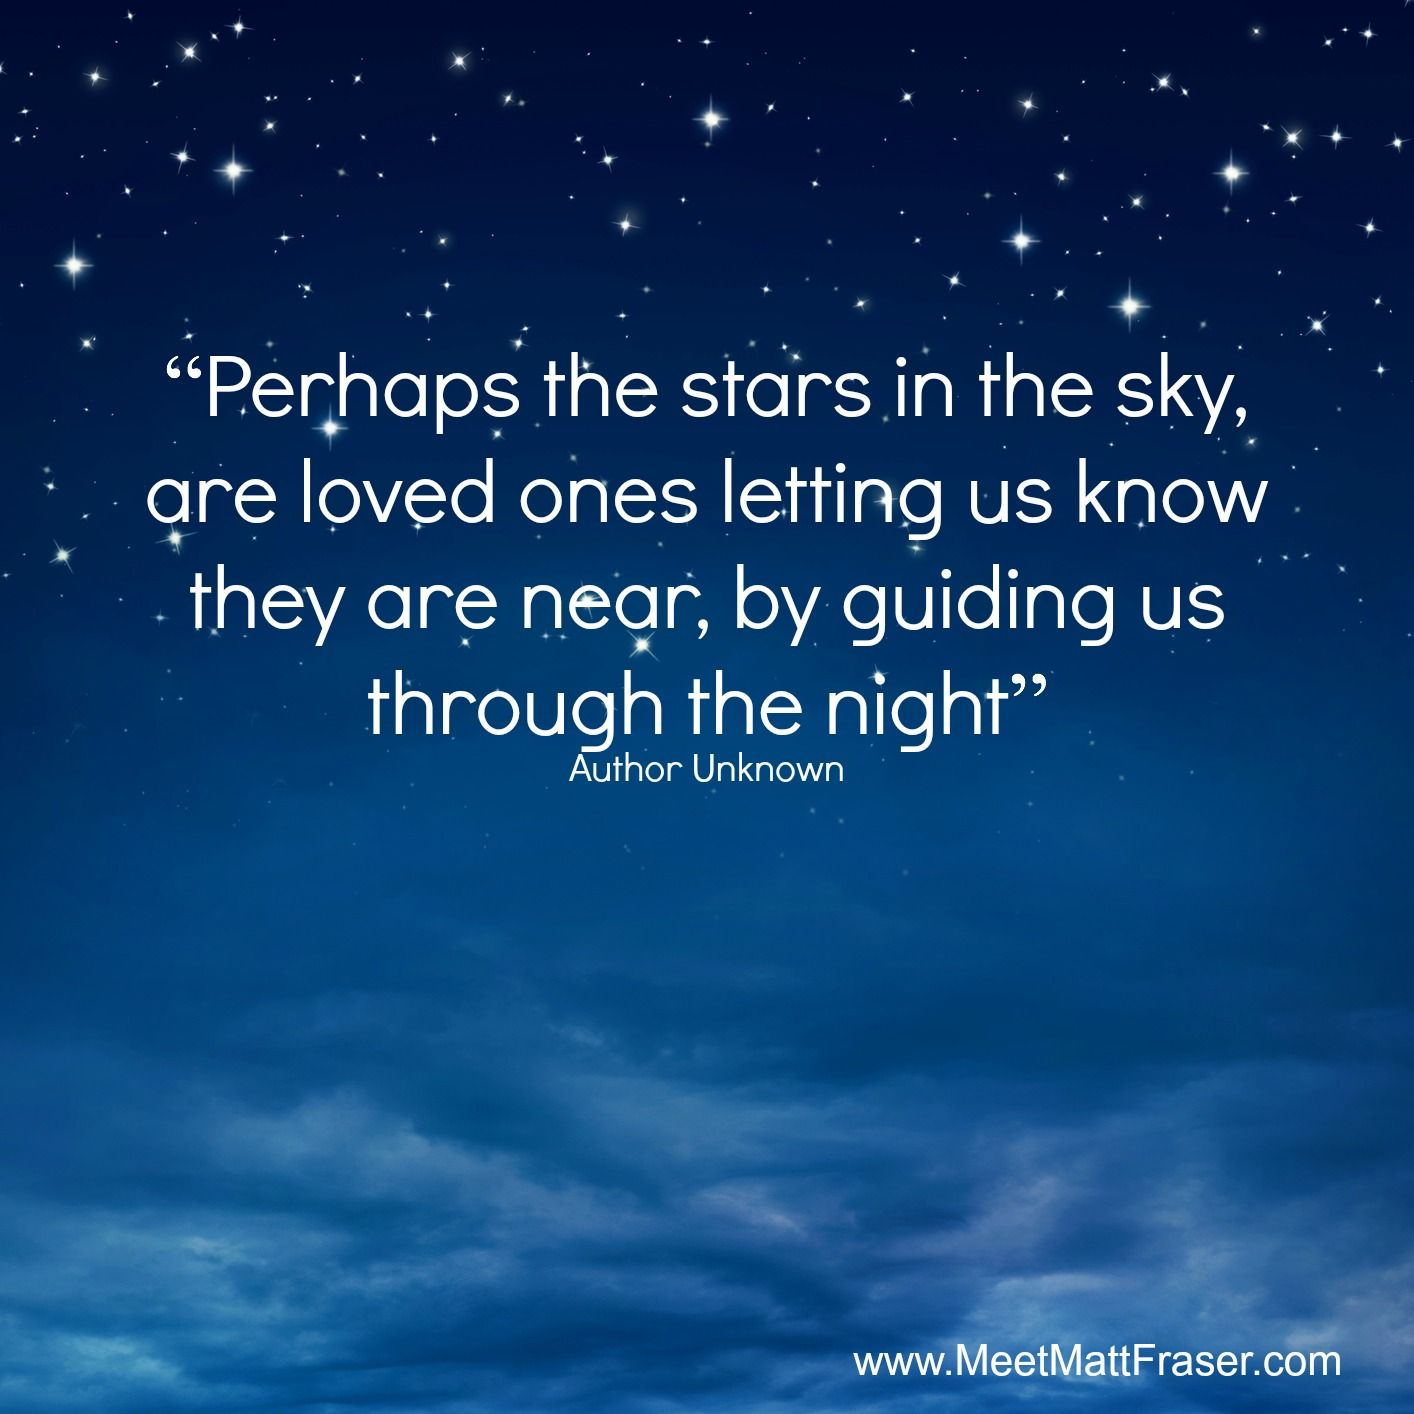 Perhaps The Stars In The Sky Are Loved Ones Letting Us Know They